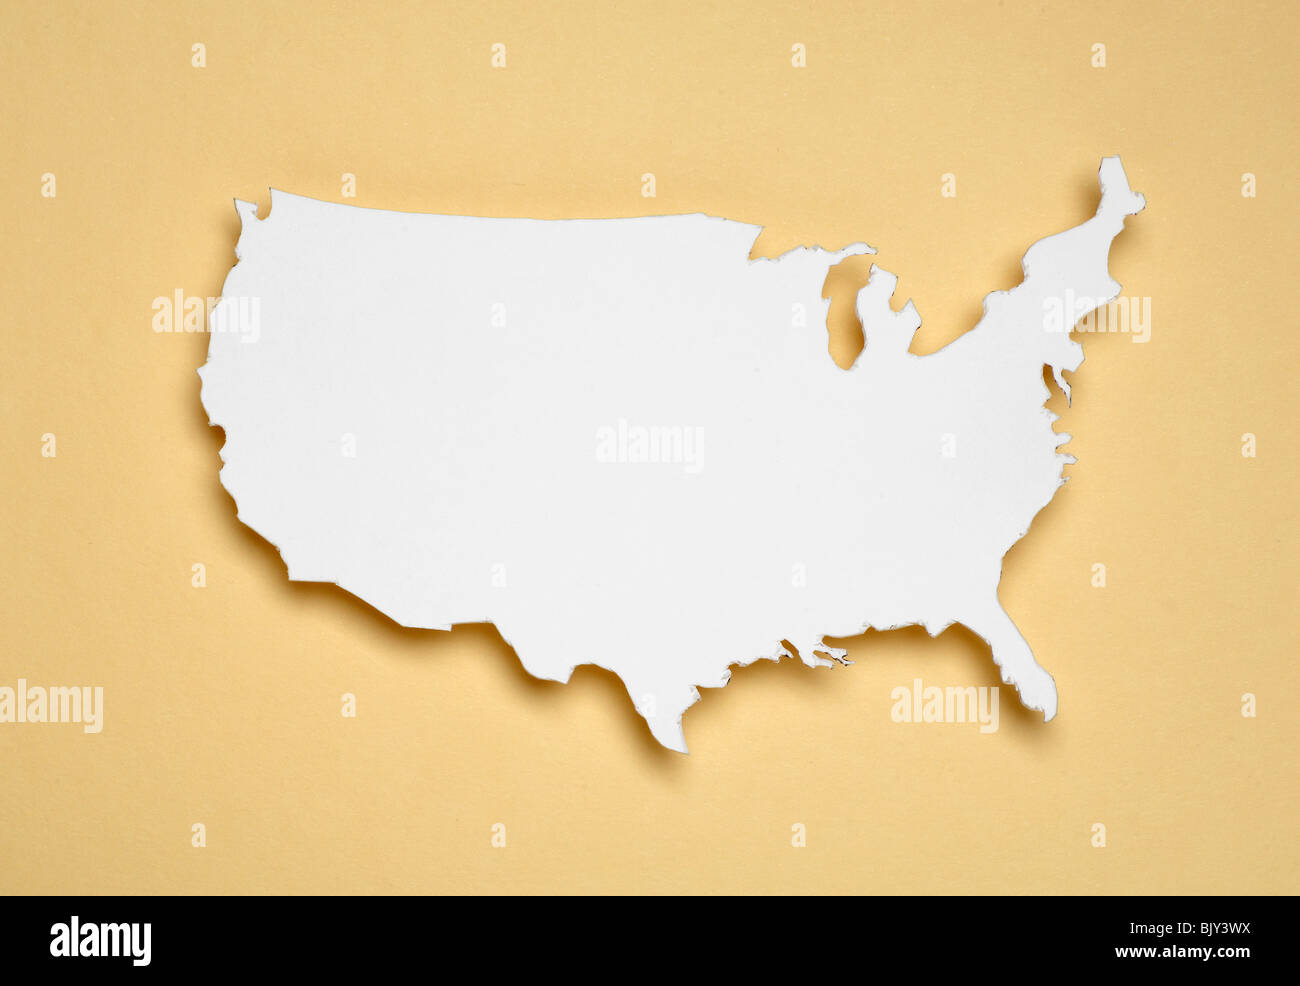 A cut out white paper outline of the United States of America Stock Photo